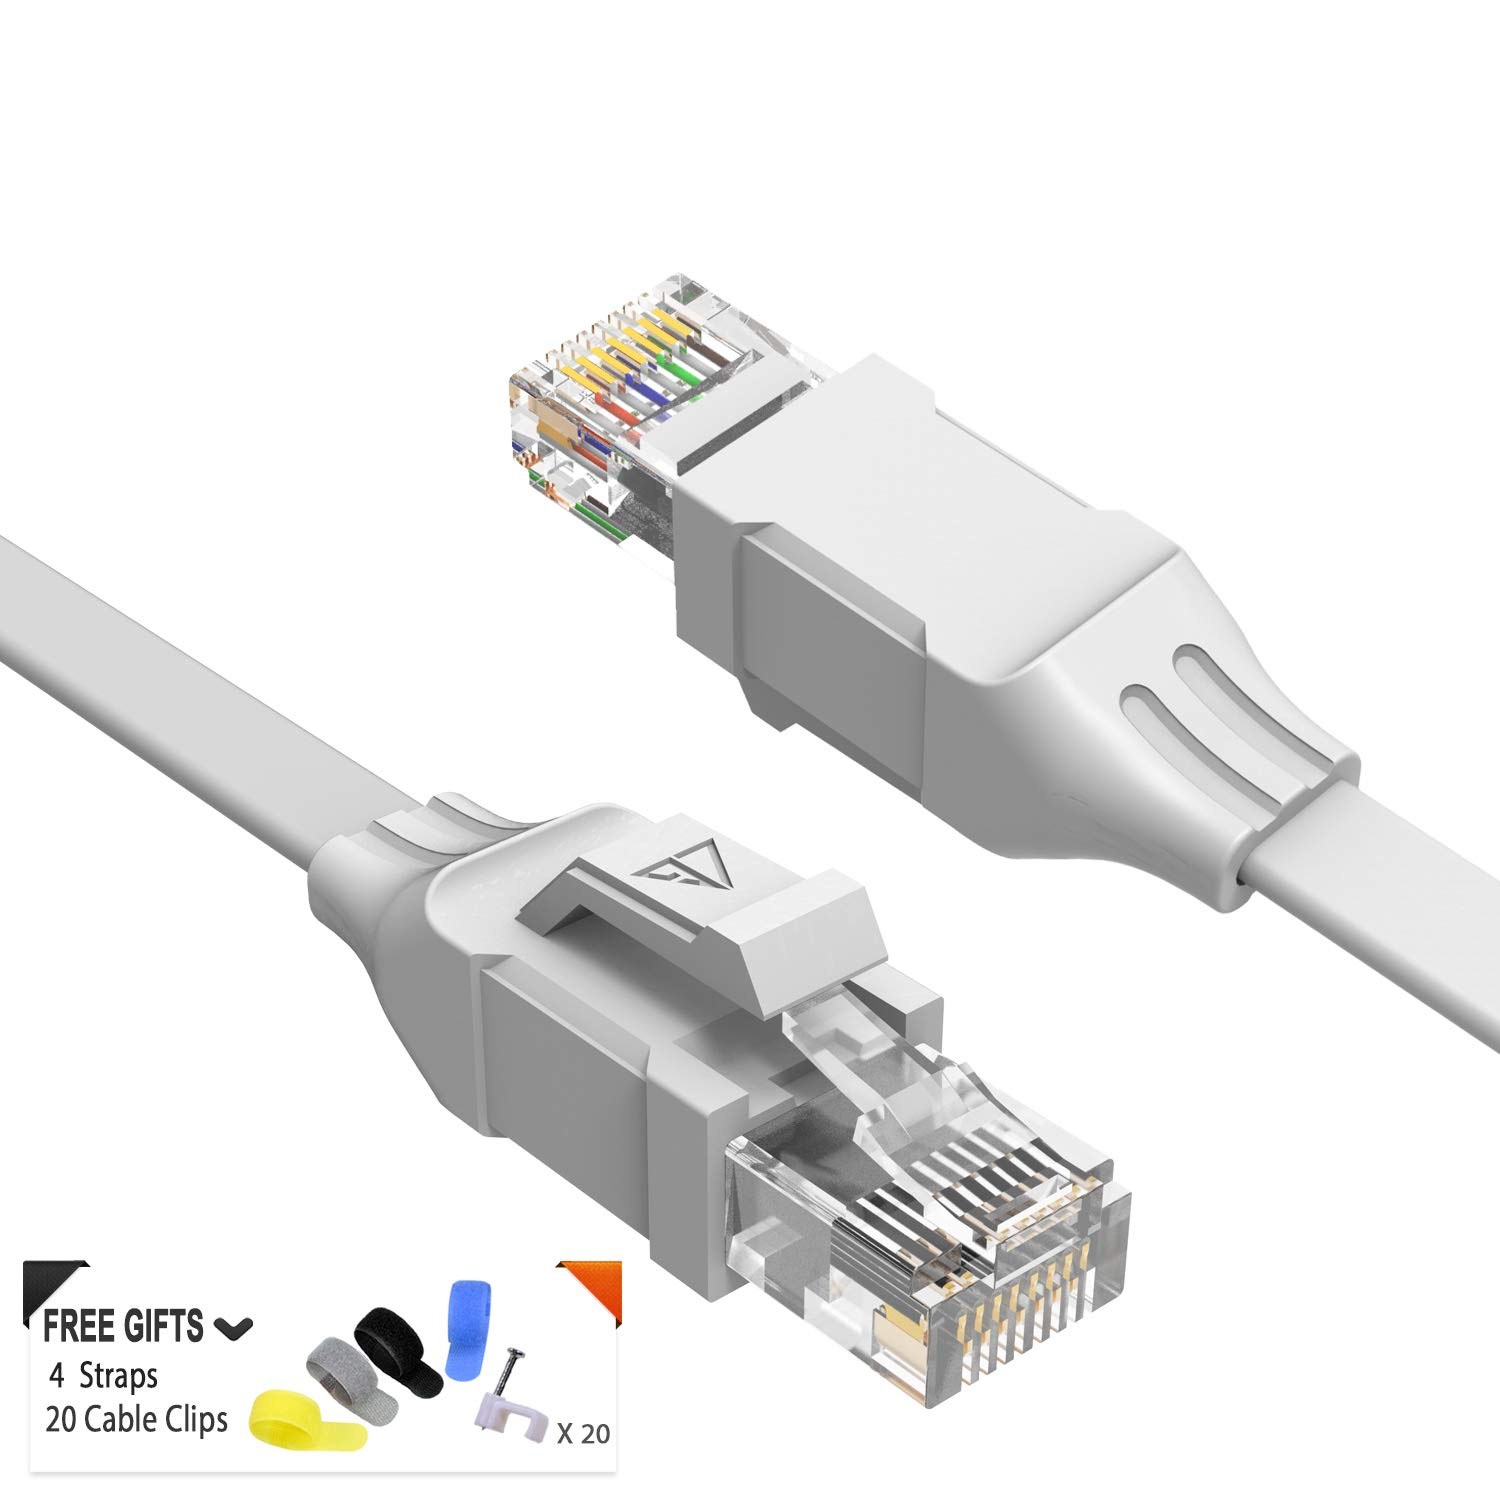 at a Cat5e Price but Higher Bandwidth Cat 6 Ethernet Cable 25 ft Black Computer LAN Cable Cat6 Internet Network Cable Flat Ethernet Patch Cable Short Enjoy High Speed Surfing